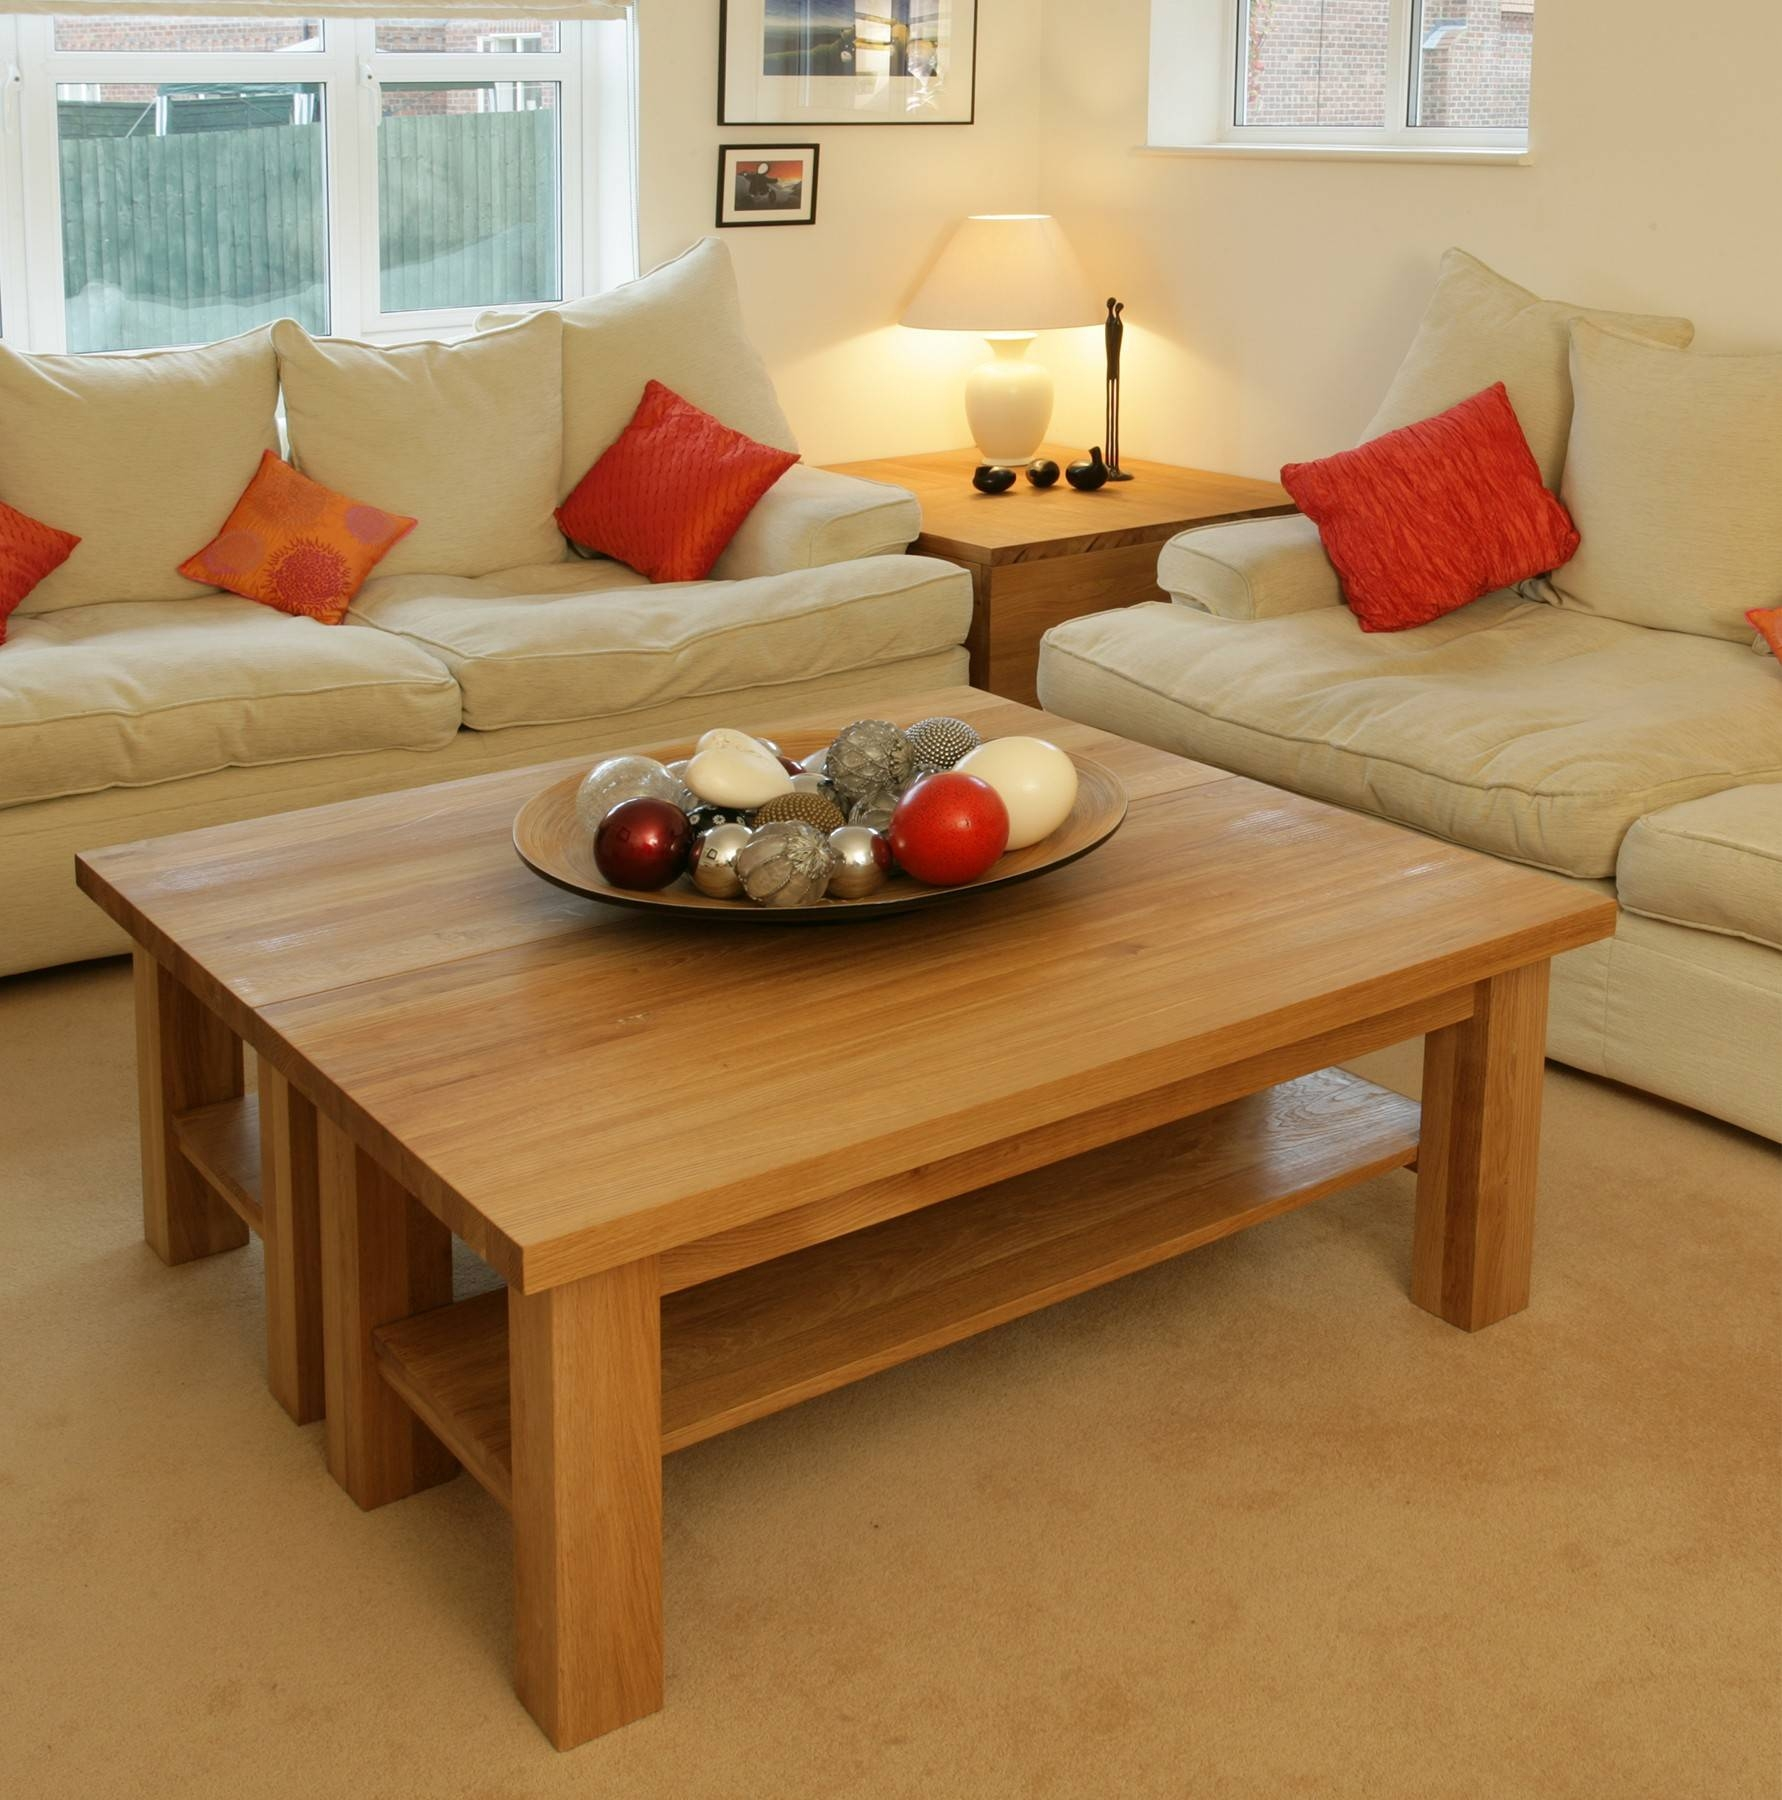 Torino Solid Oak 4Ft Coffee Table | Furniture4Yourhome with regard to Torino Coffee Tables (Image 26 of 30)